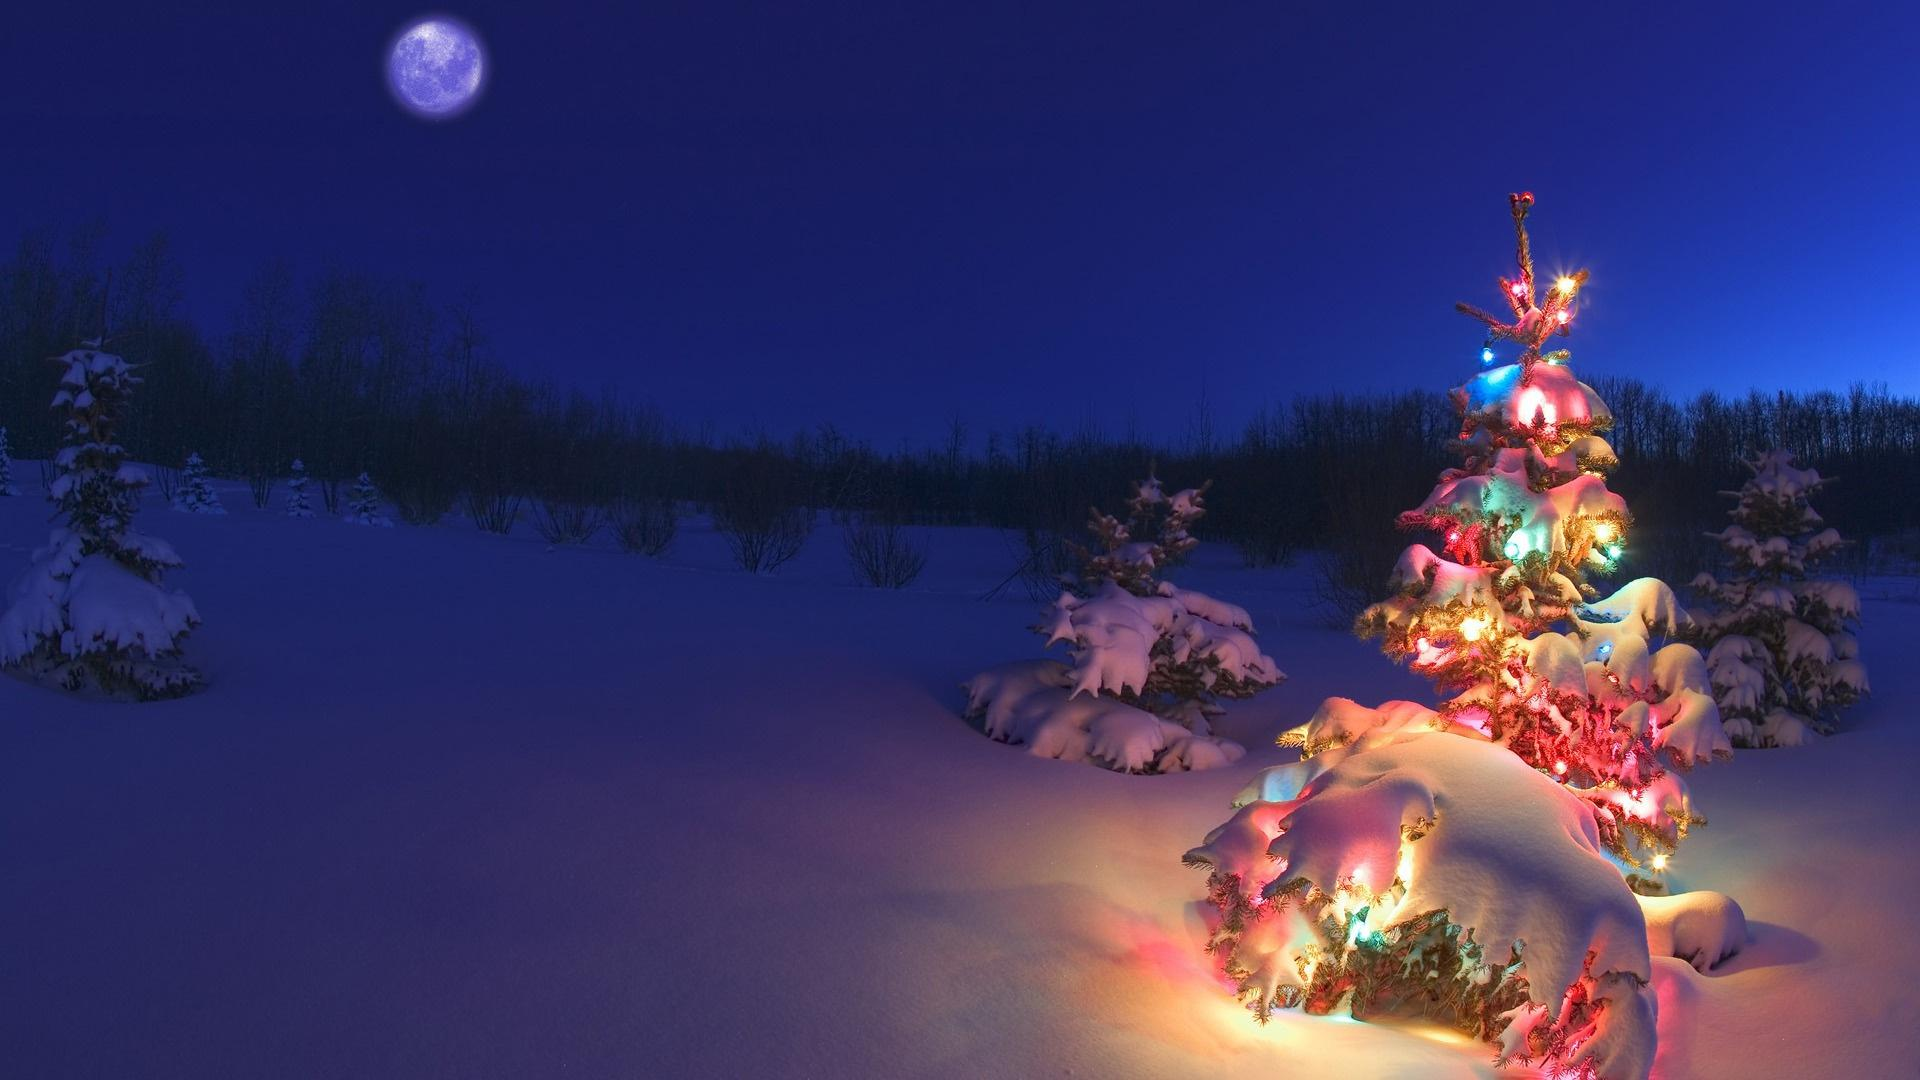 Merry Christmas 2012 HD Wallpapers - I Have A PC